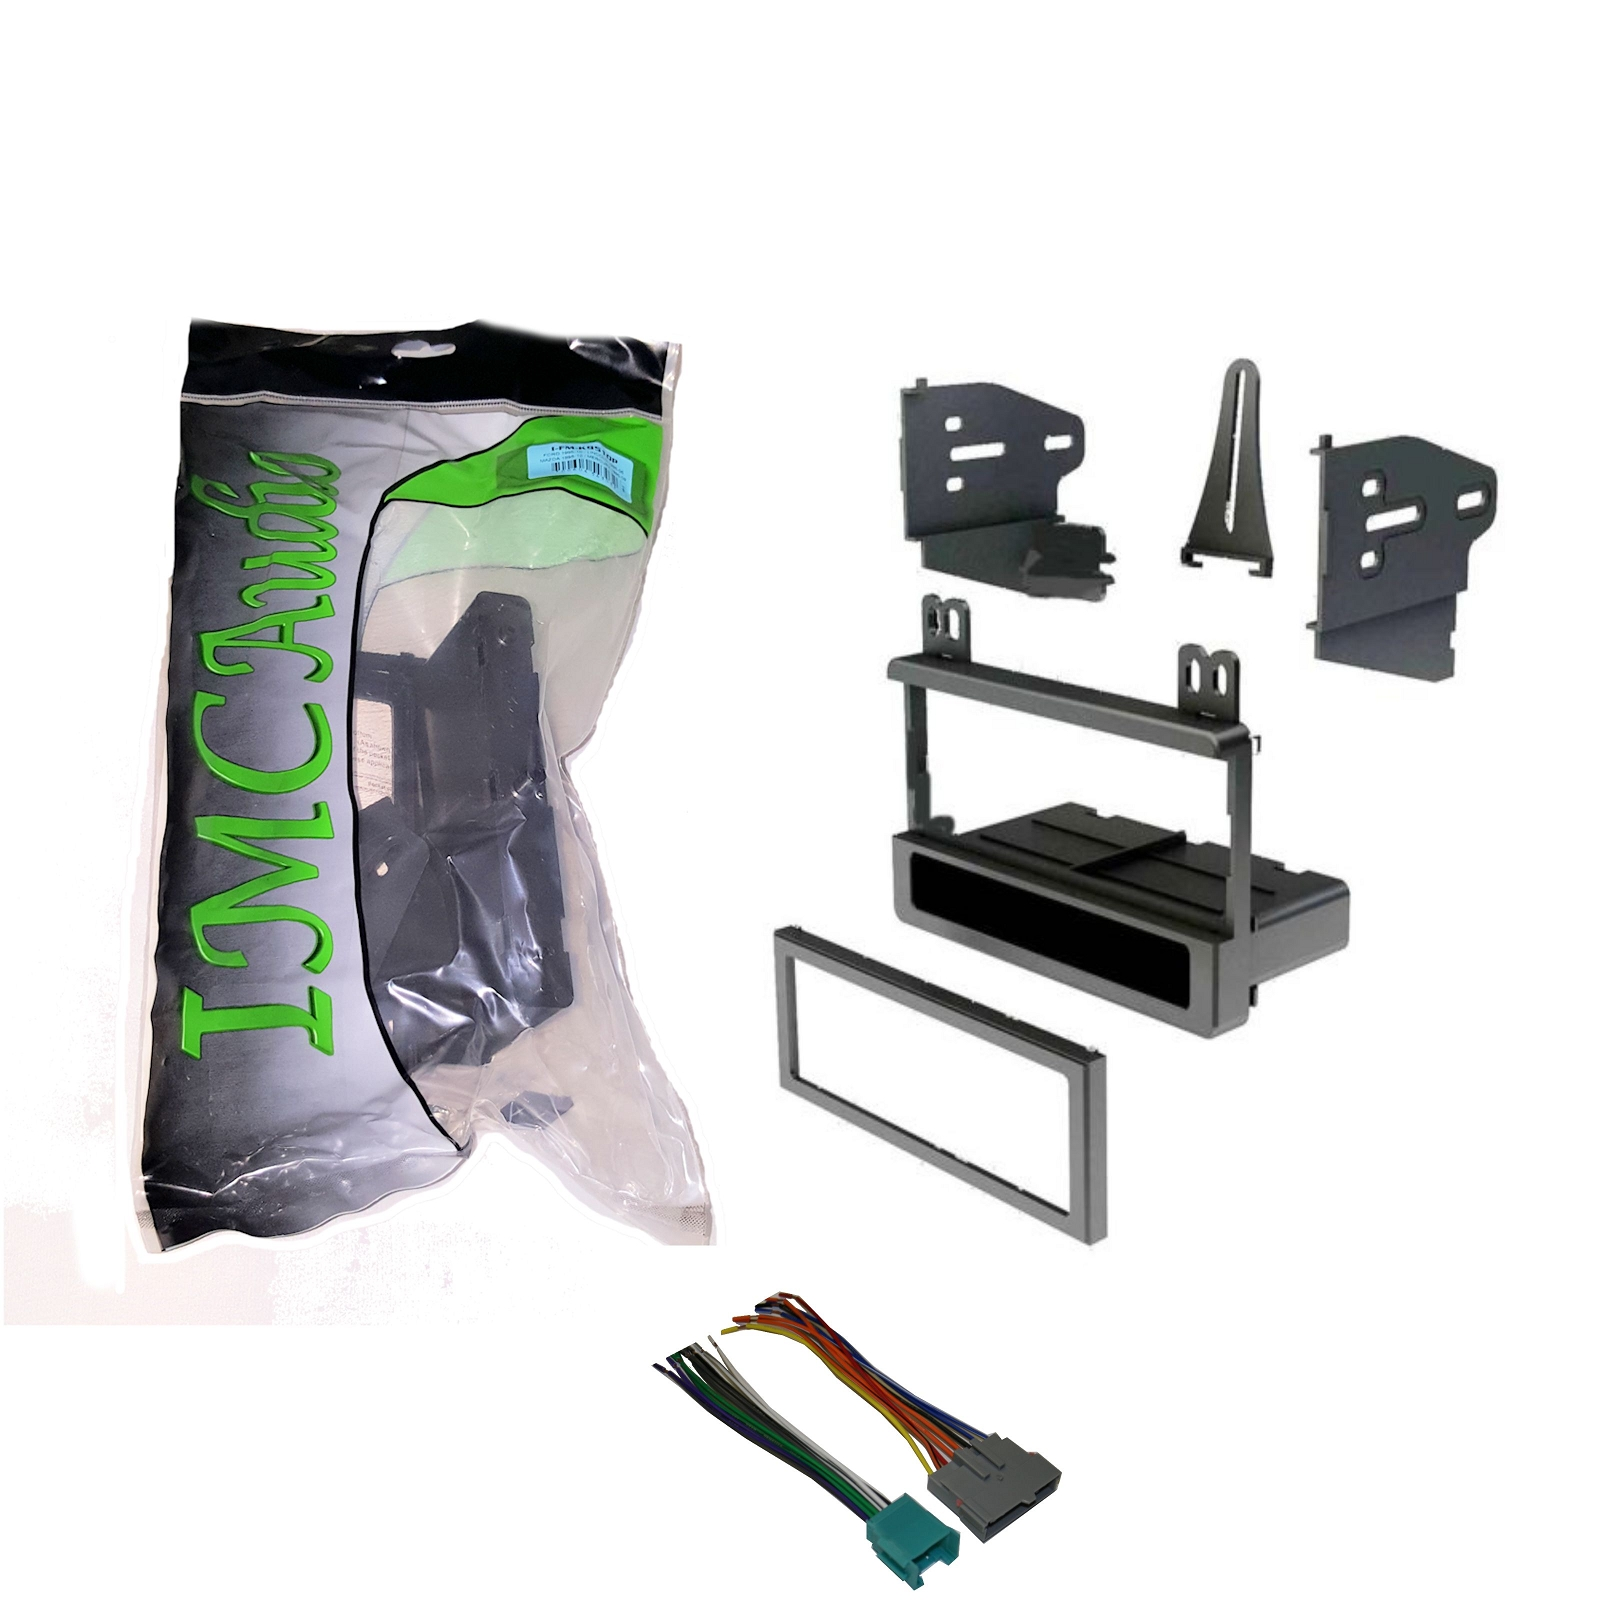 hight resolution of 1995 1997 ford ranger dash kit single din wire harness for stereo replacement install walmart com